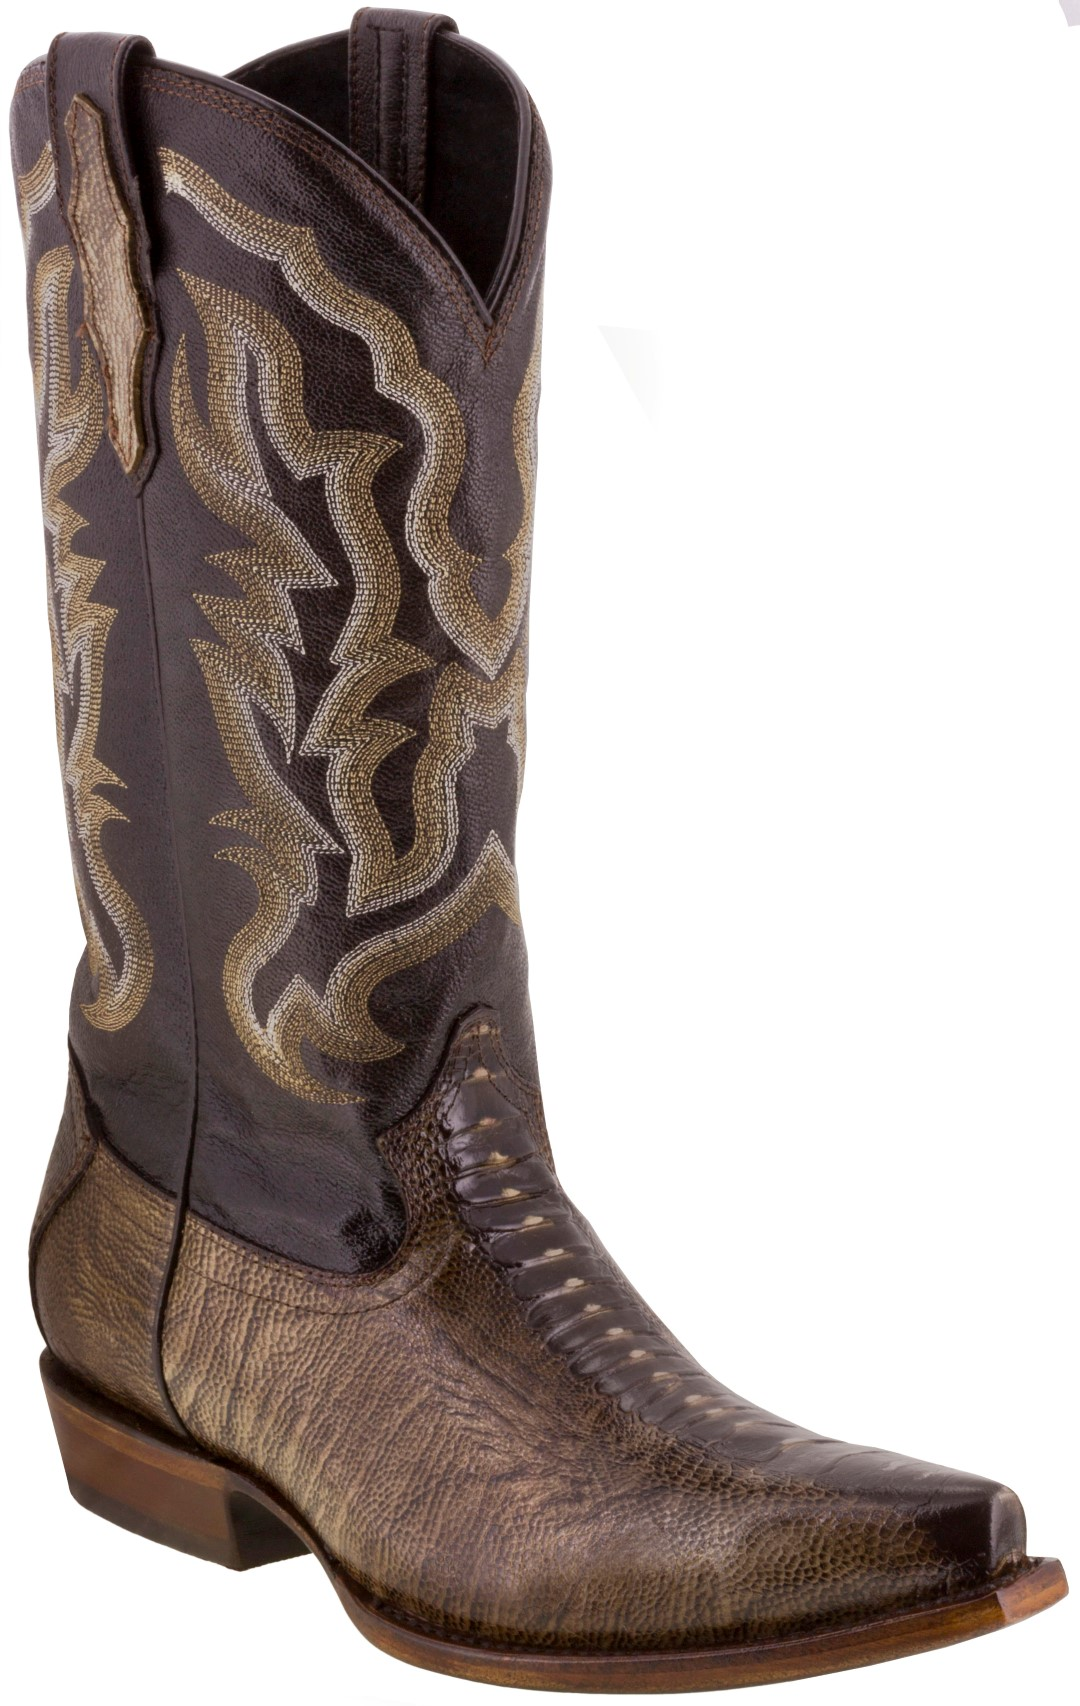 64007d3900e Mens Genuine Leather Brown Ostrich Leg Print Rodeo Cowboy Boots ...